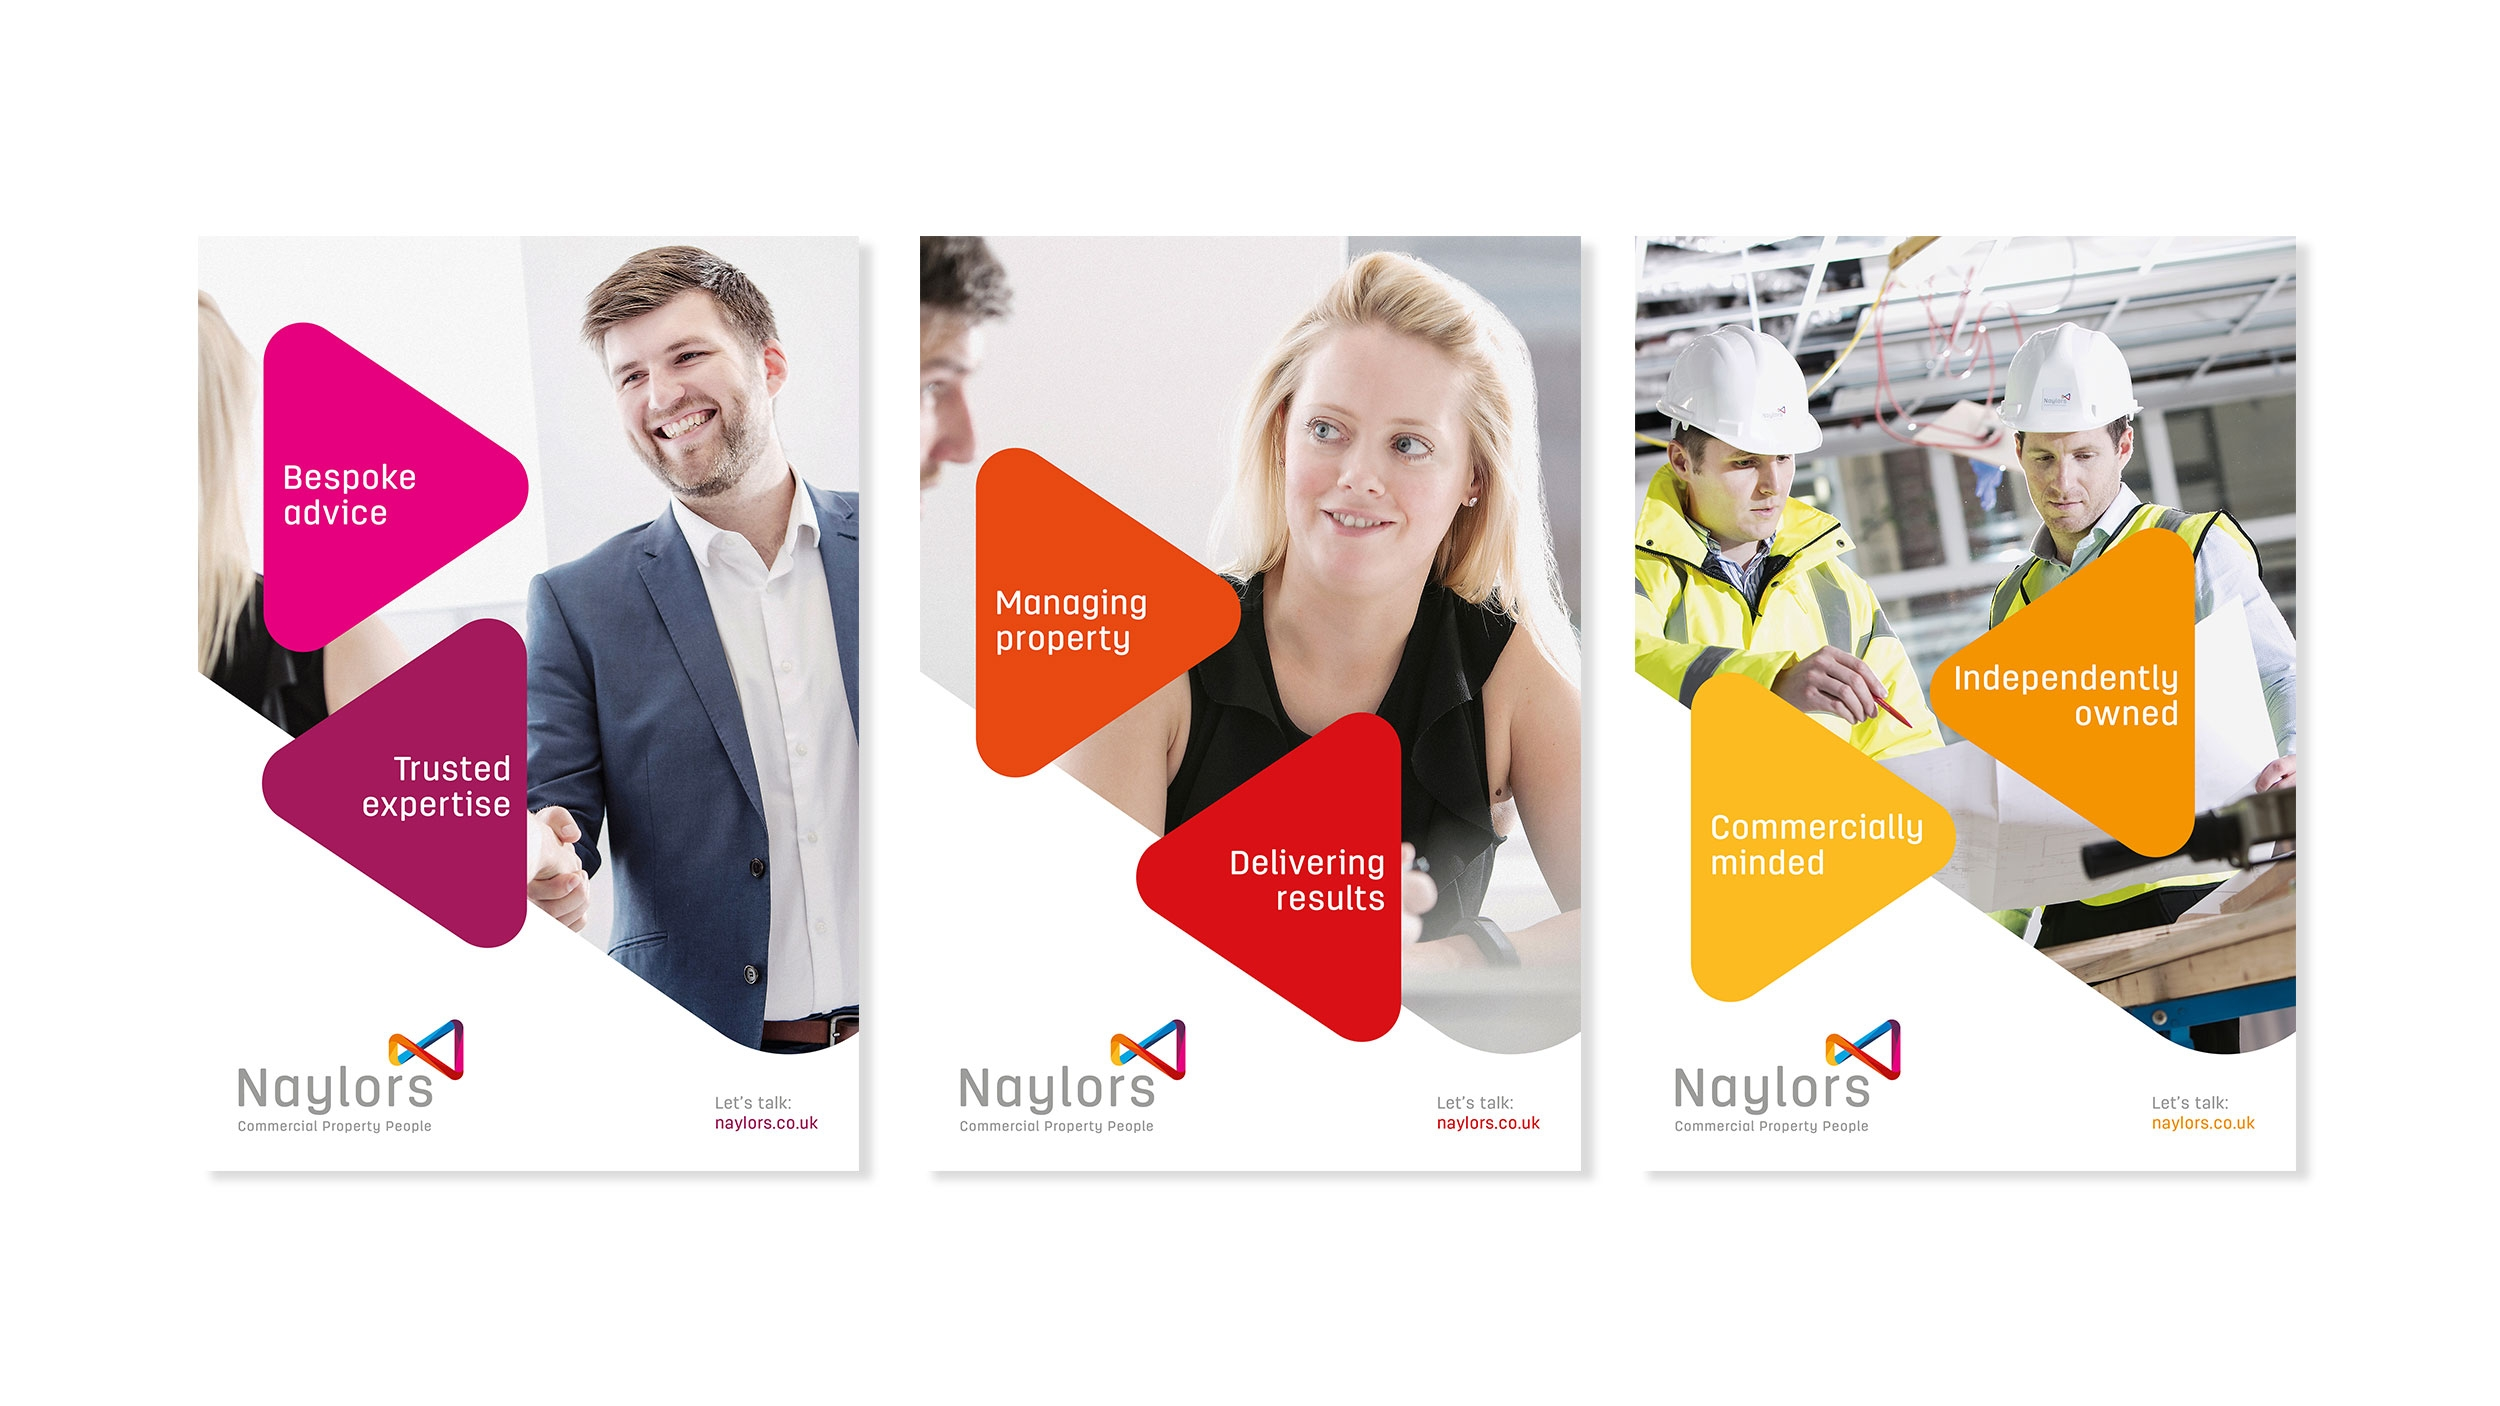 Naylors surveyors branding and brand values by Altogether creative.